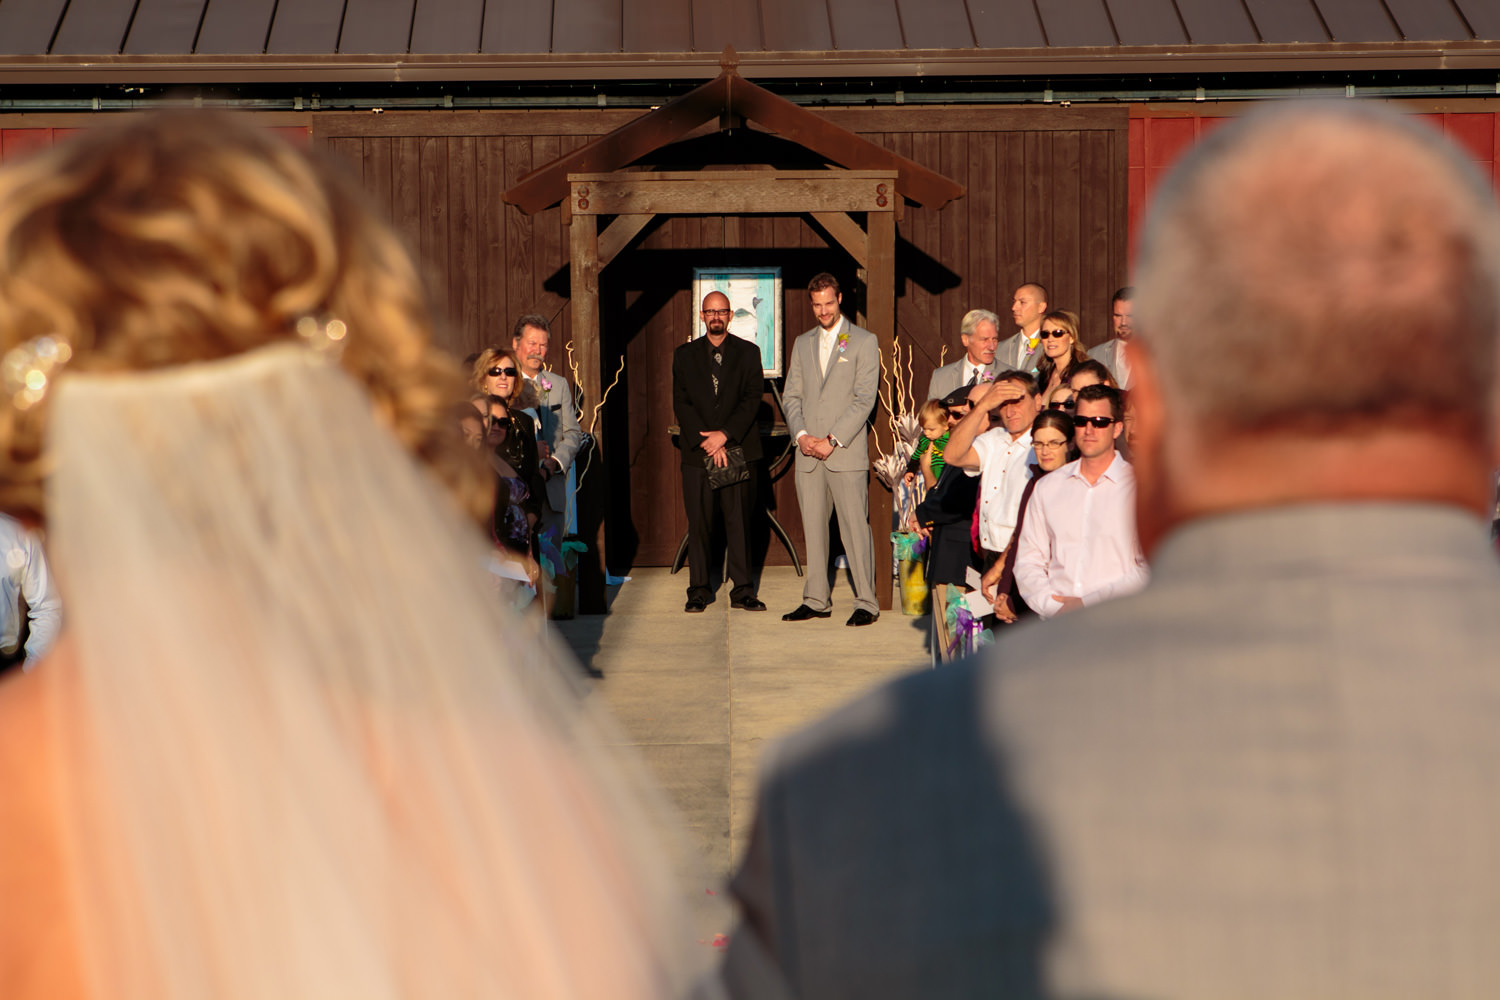 big-red-barn-highland-meadows-wedding-golfcourse-windsor042.jpg